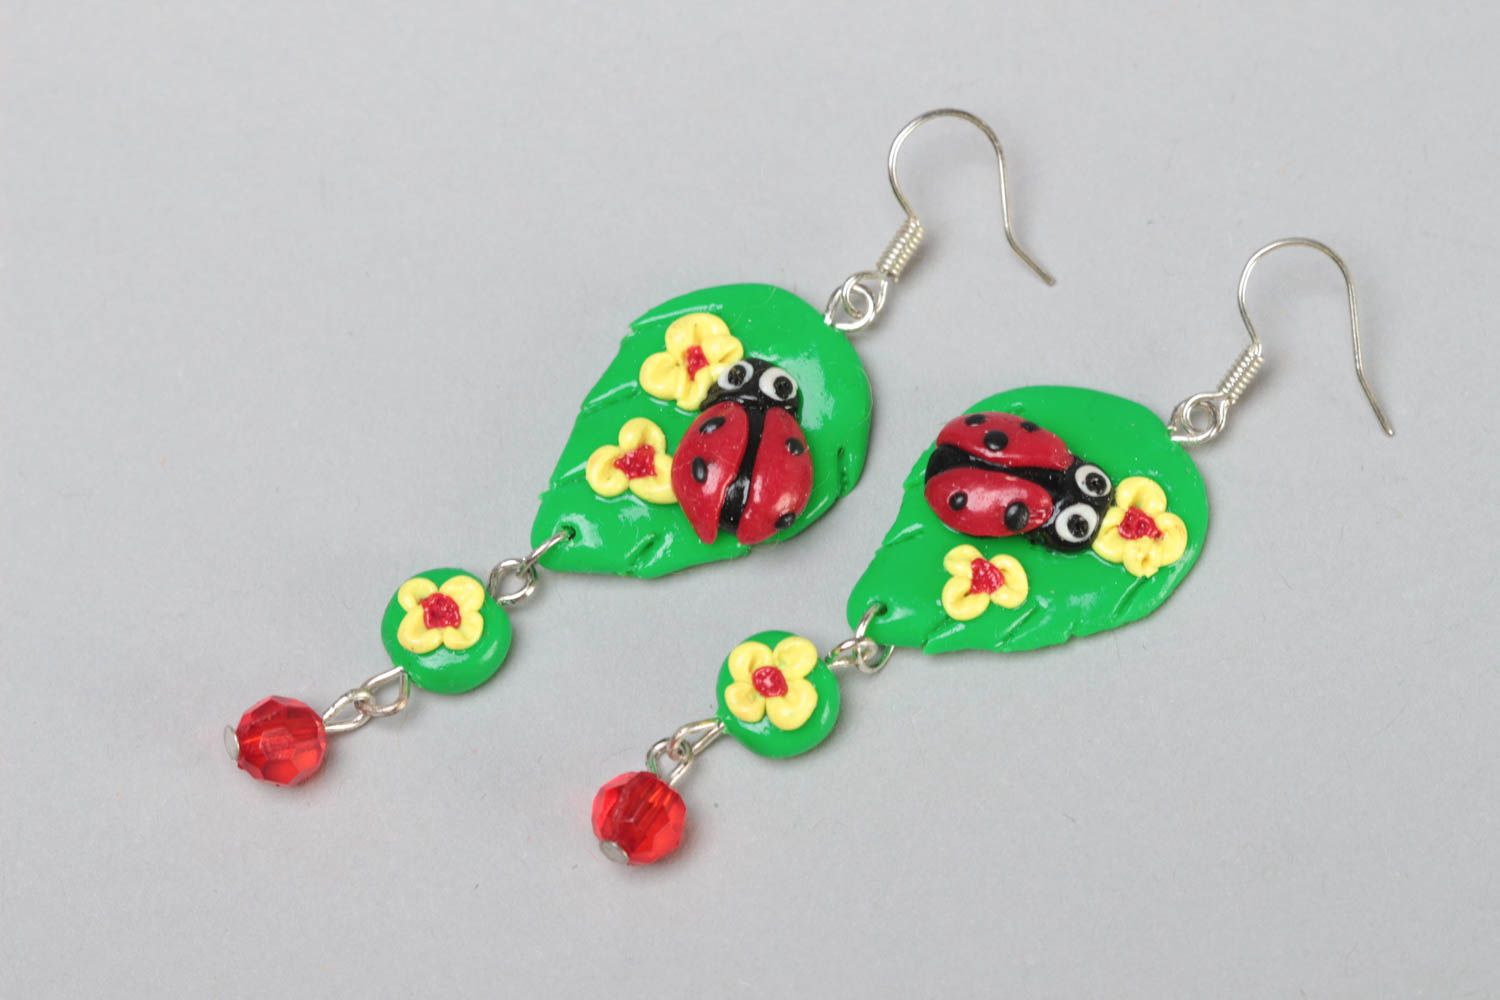 Handmade bright green long dangling polymer clay earrings with ladybugs photo 2